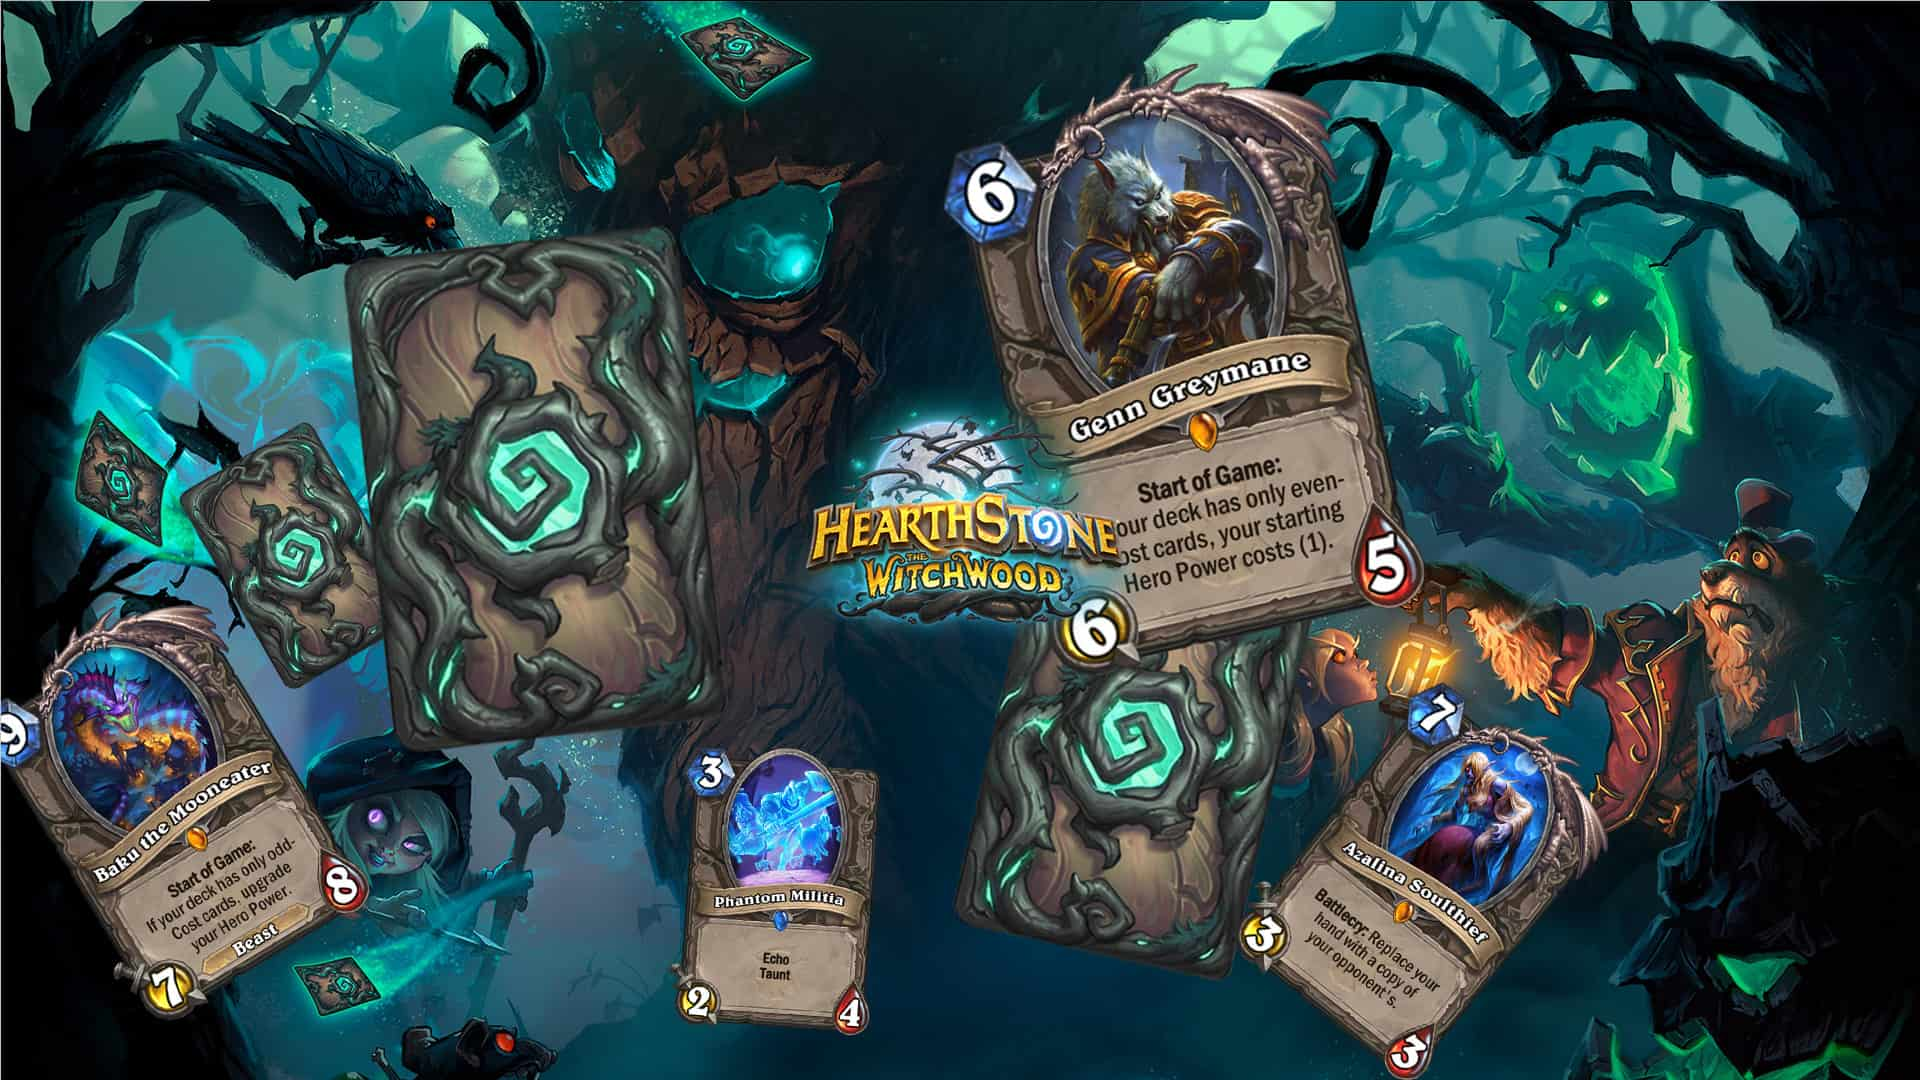 Hearthstone is getting more social with a new tournament feature